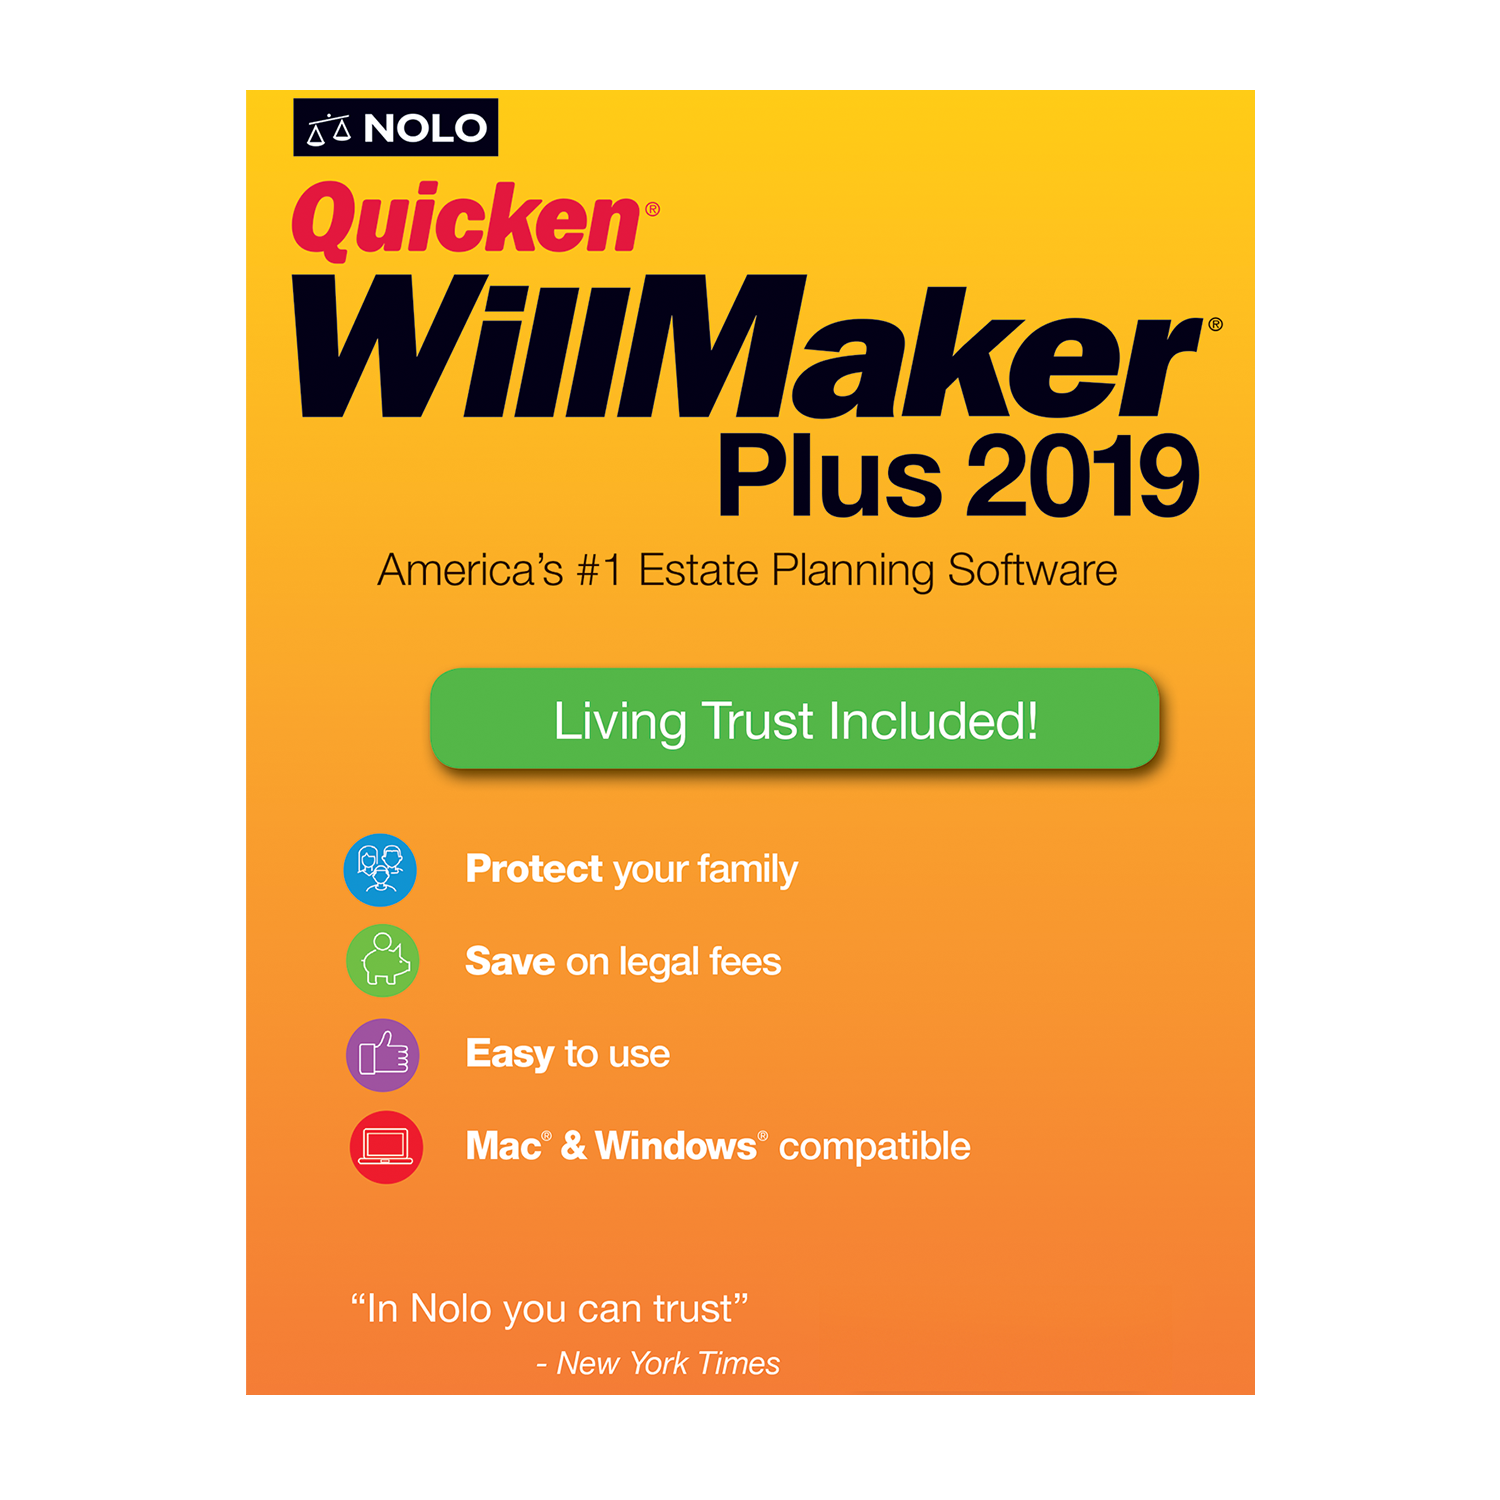 NOLO Quicken WillMaker Plus (2019) - #OAE4774